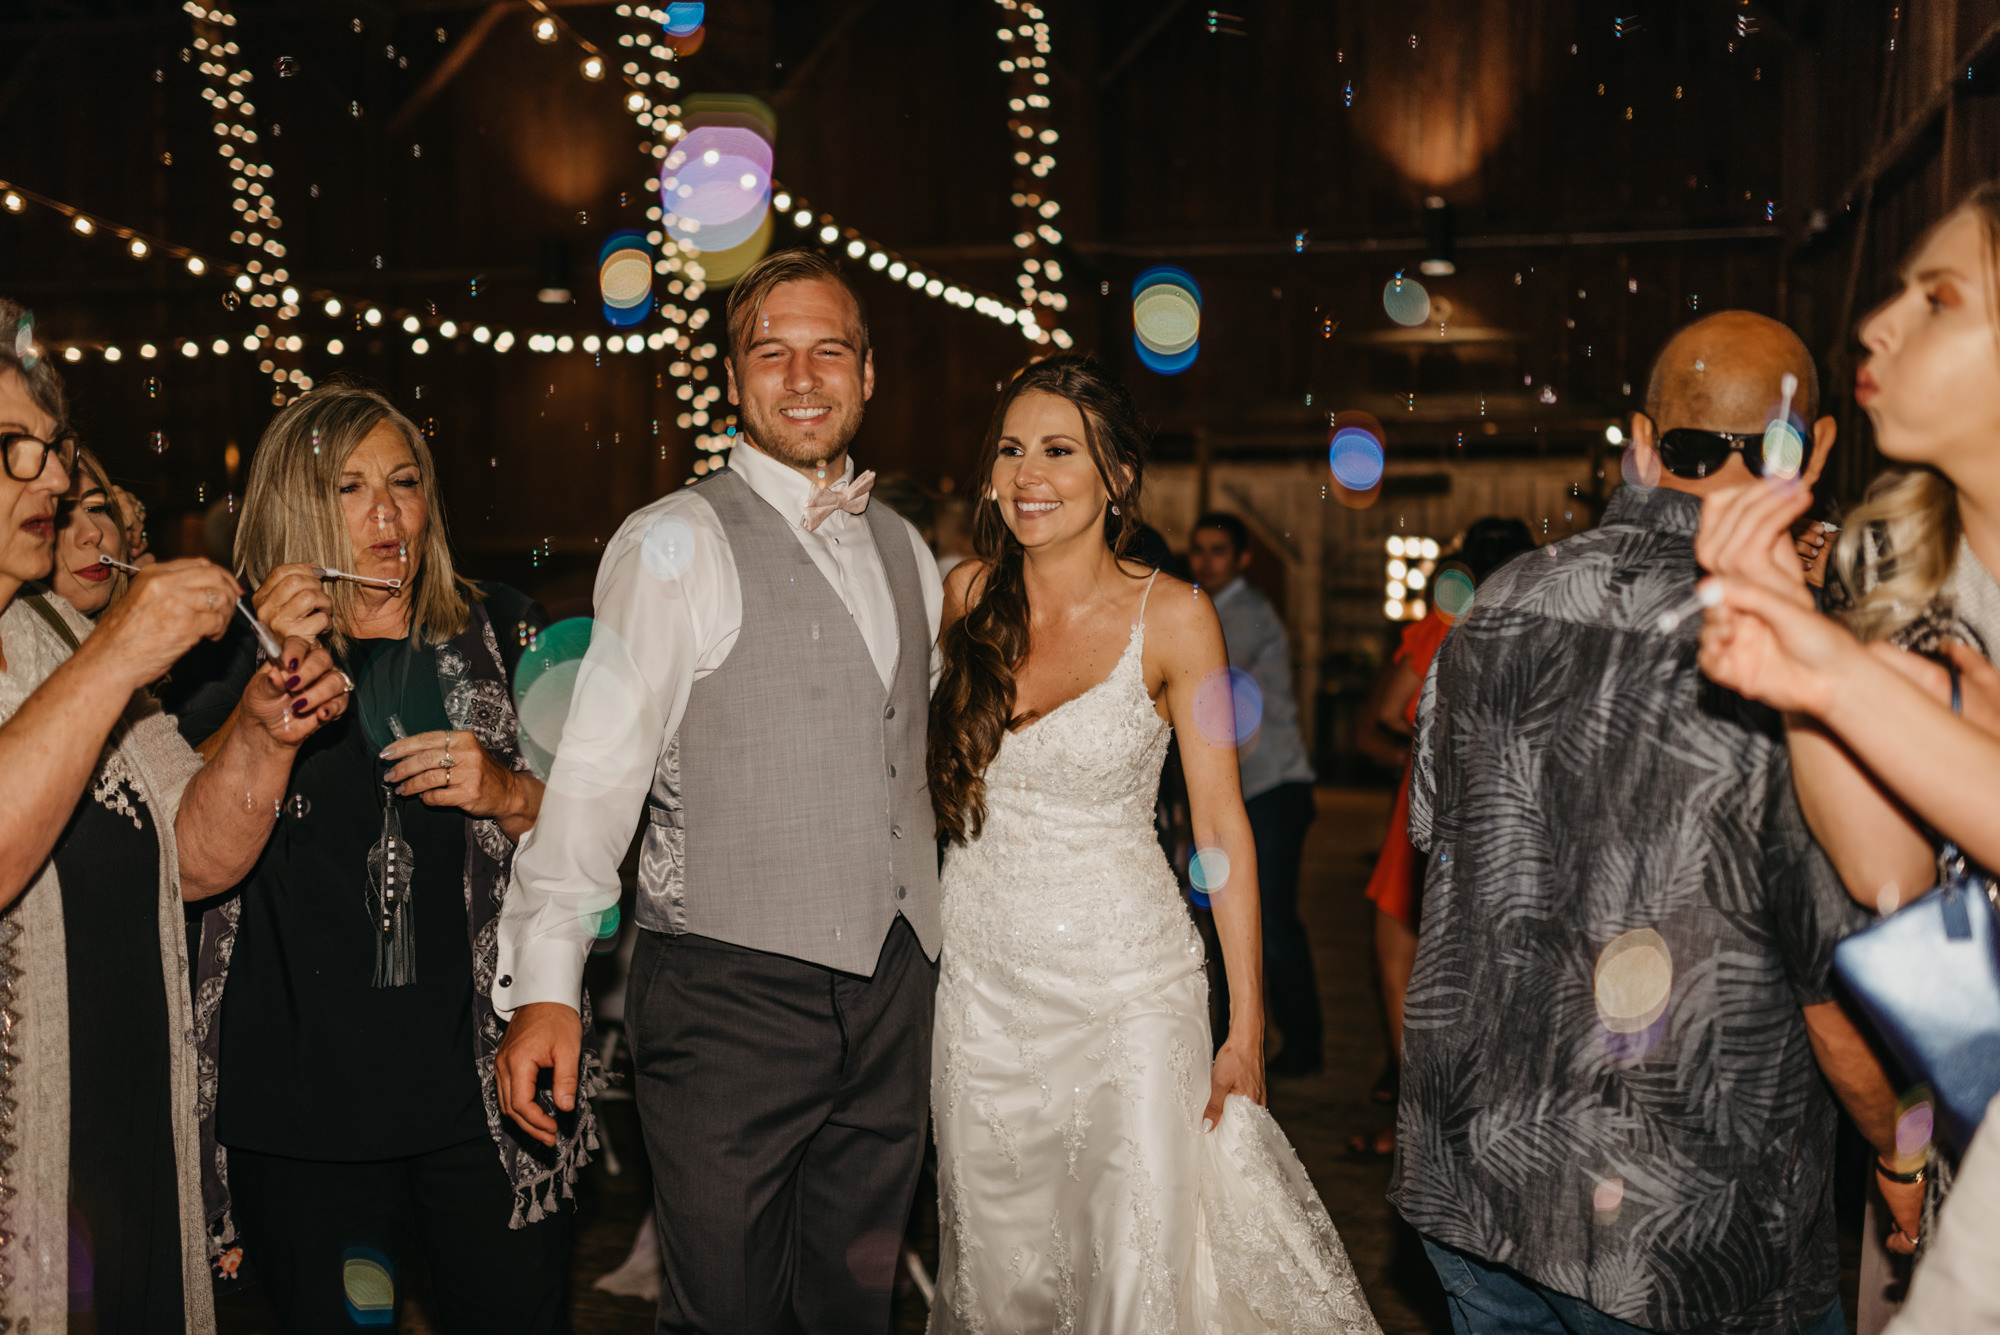 222-portland-northwest-wedding-bubble-exit-barn-string-lights.jpg